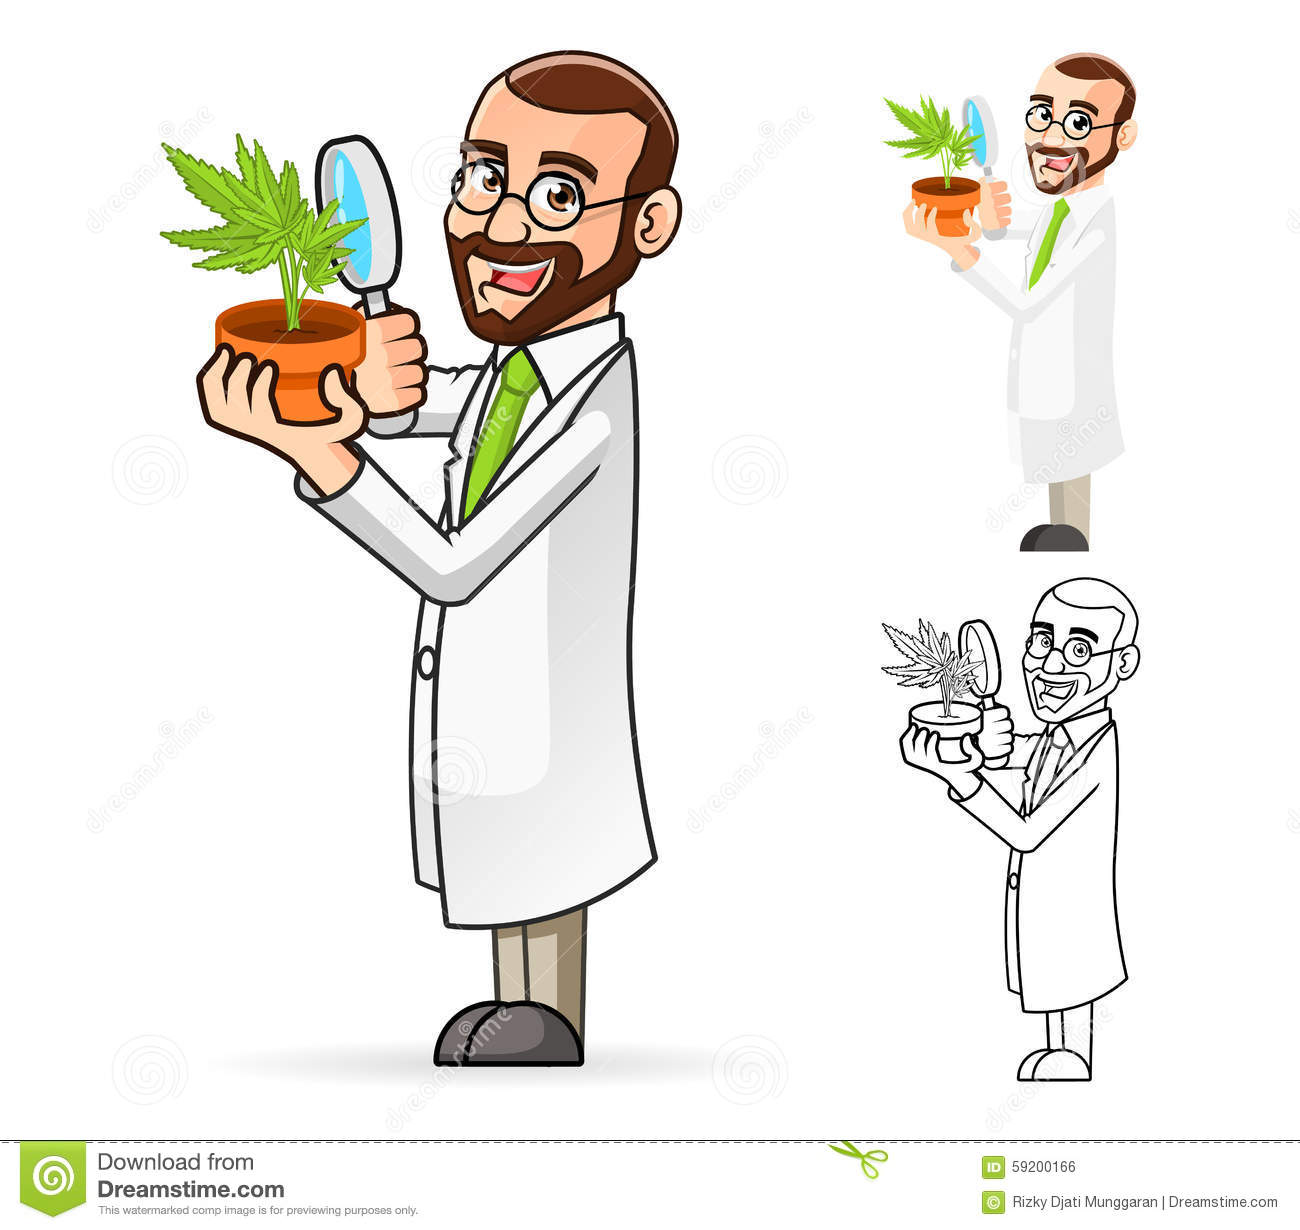 Plant scientist cartoon character looking at a